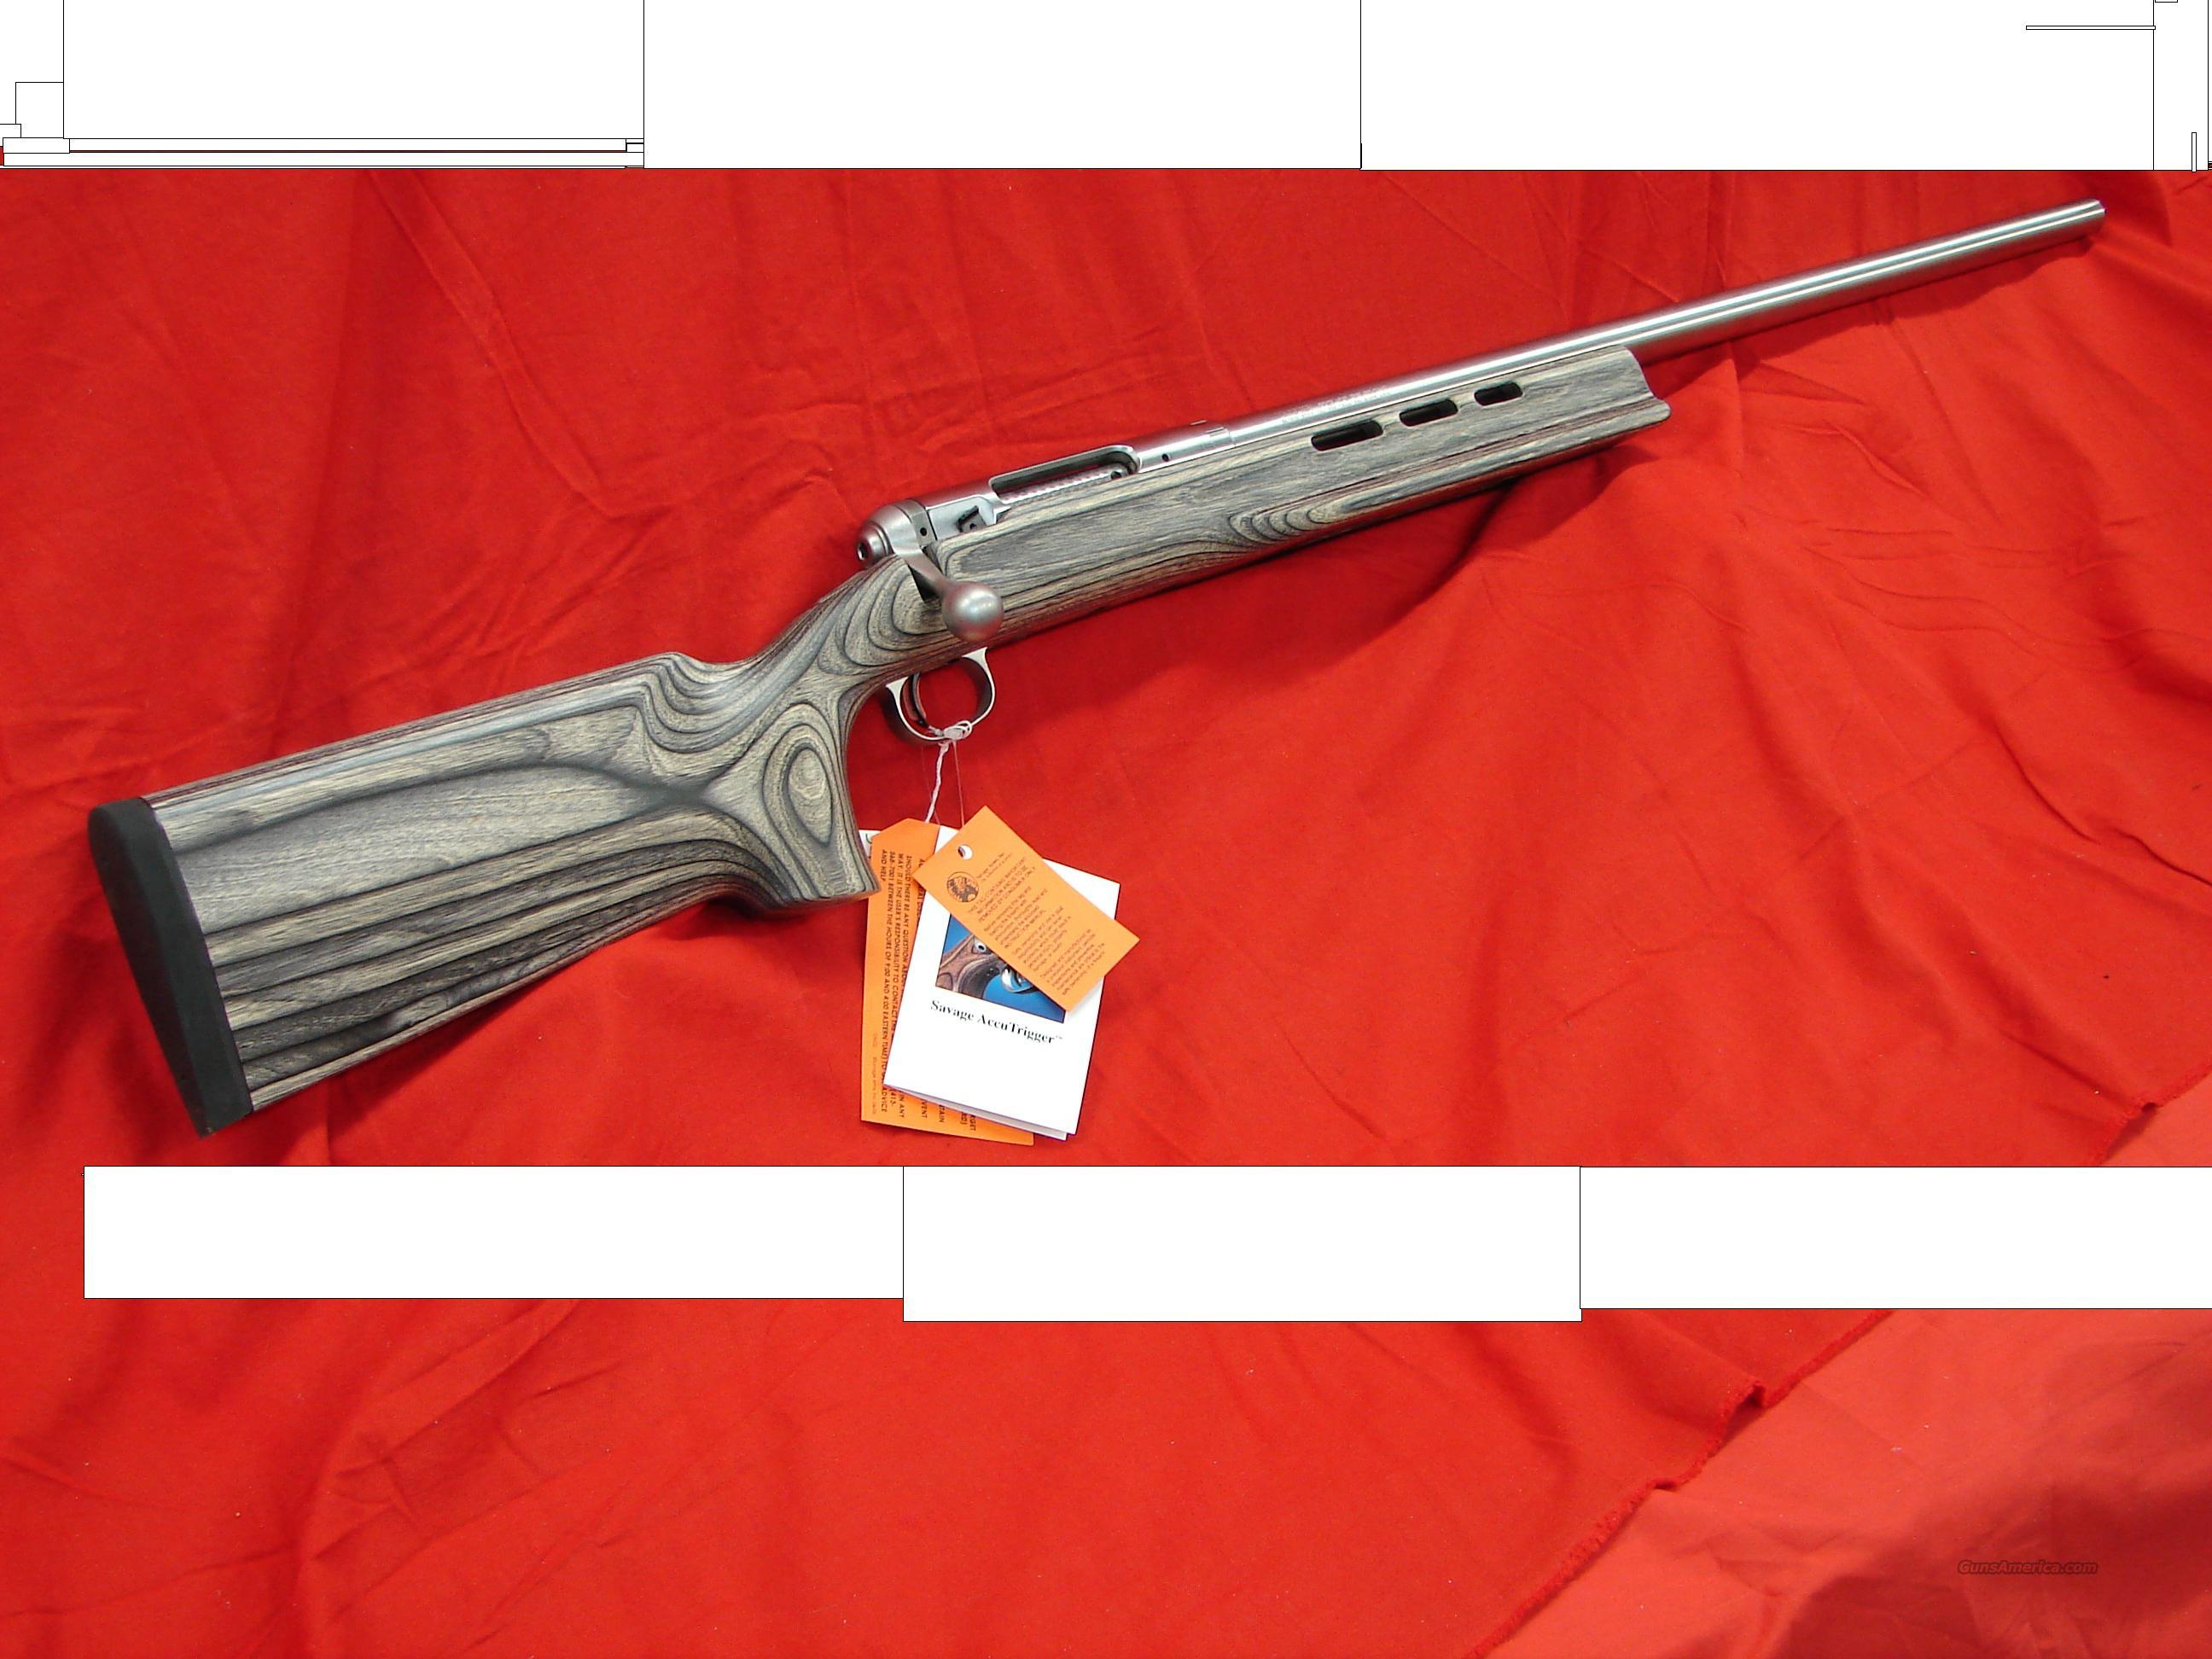 Savage Mdl 12 Bench Rest Rifle In 308 Win For Sale